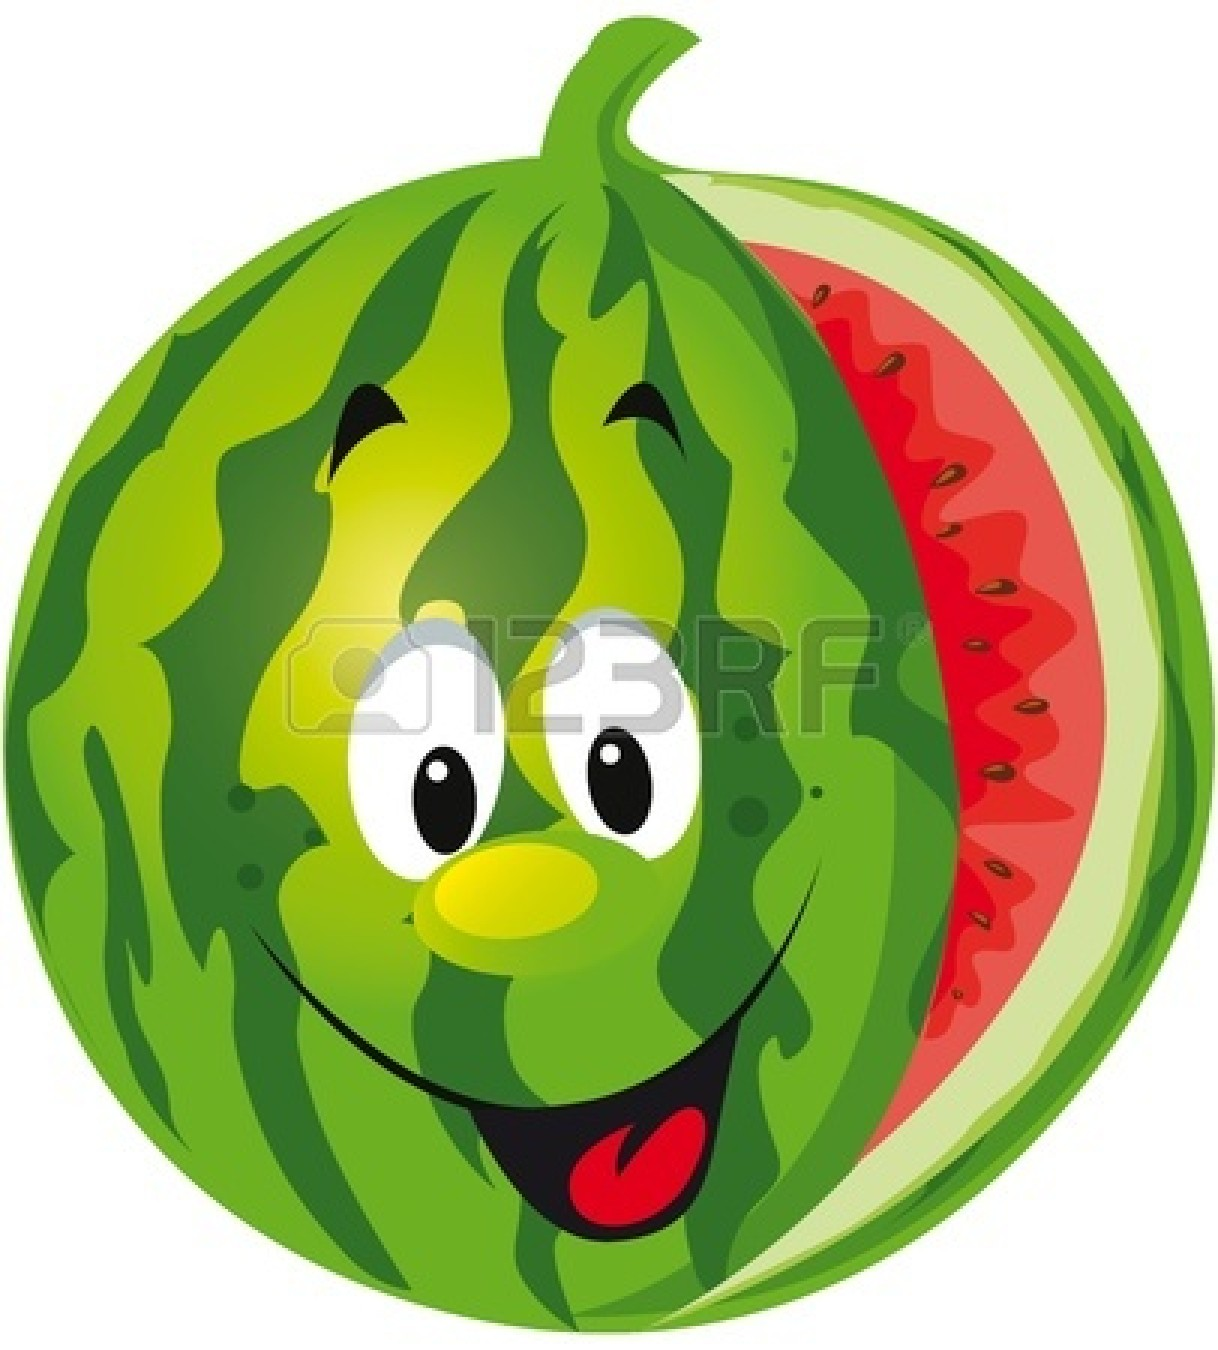 Watermelon Cartoon Images Watermelon Back...